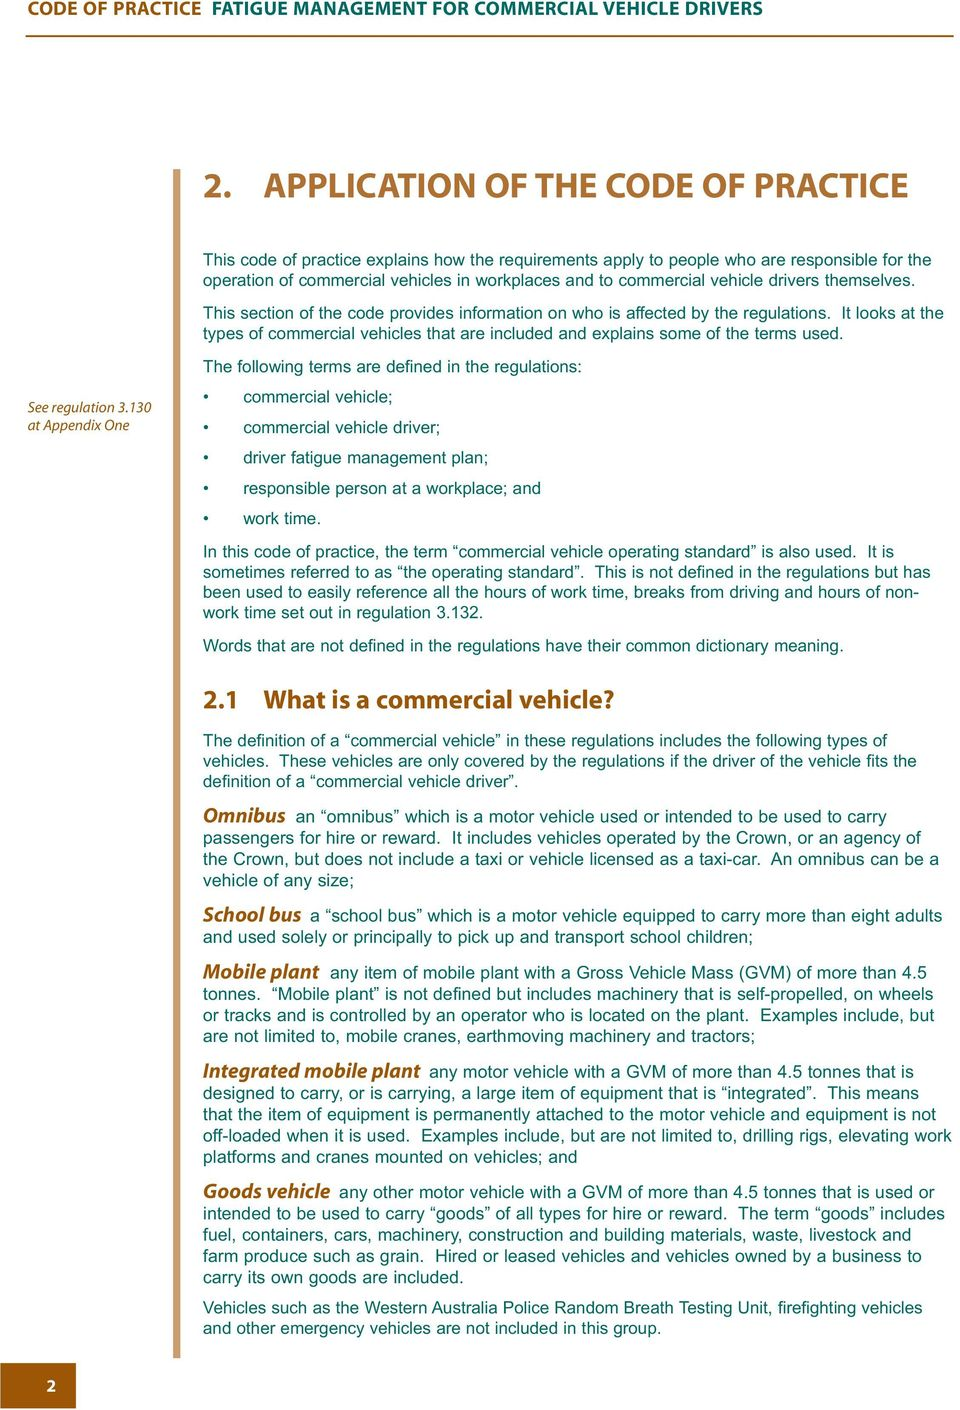 It looks at the types of commercial vehicles that are included and explains some of the terms used. See regulation 3.